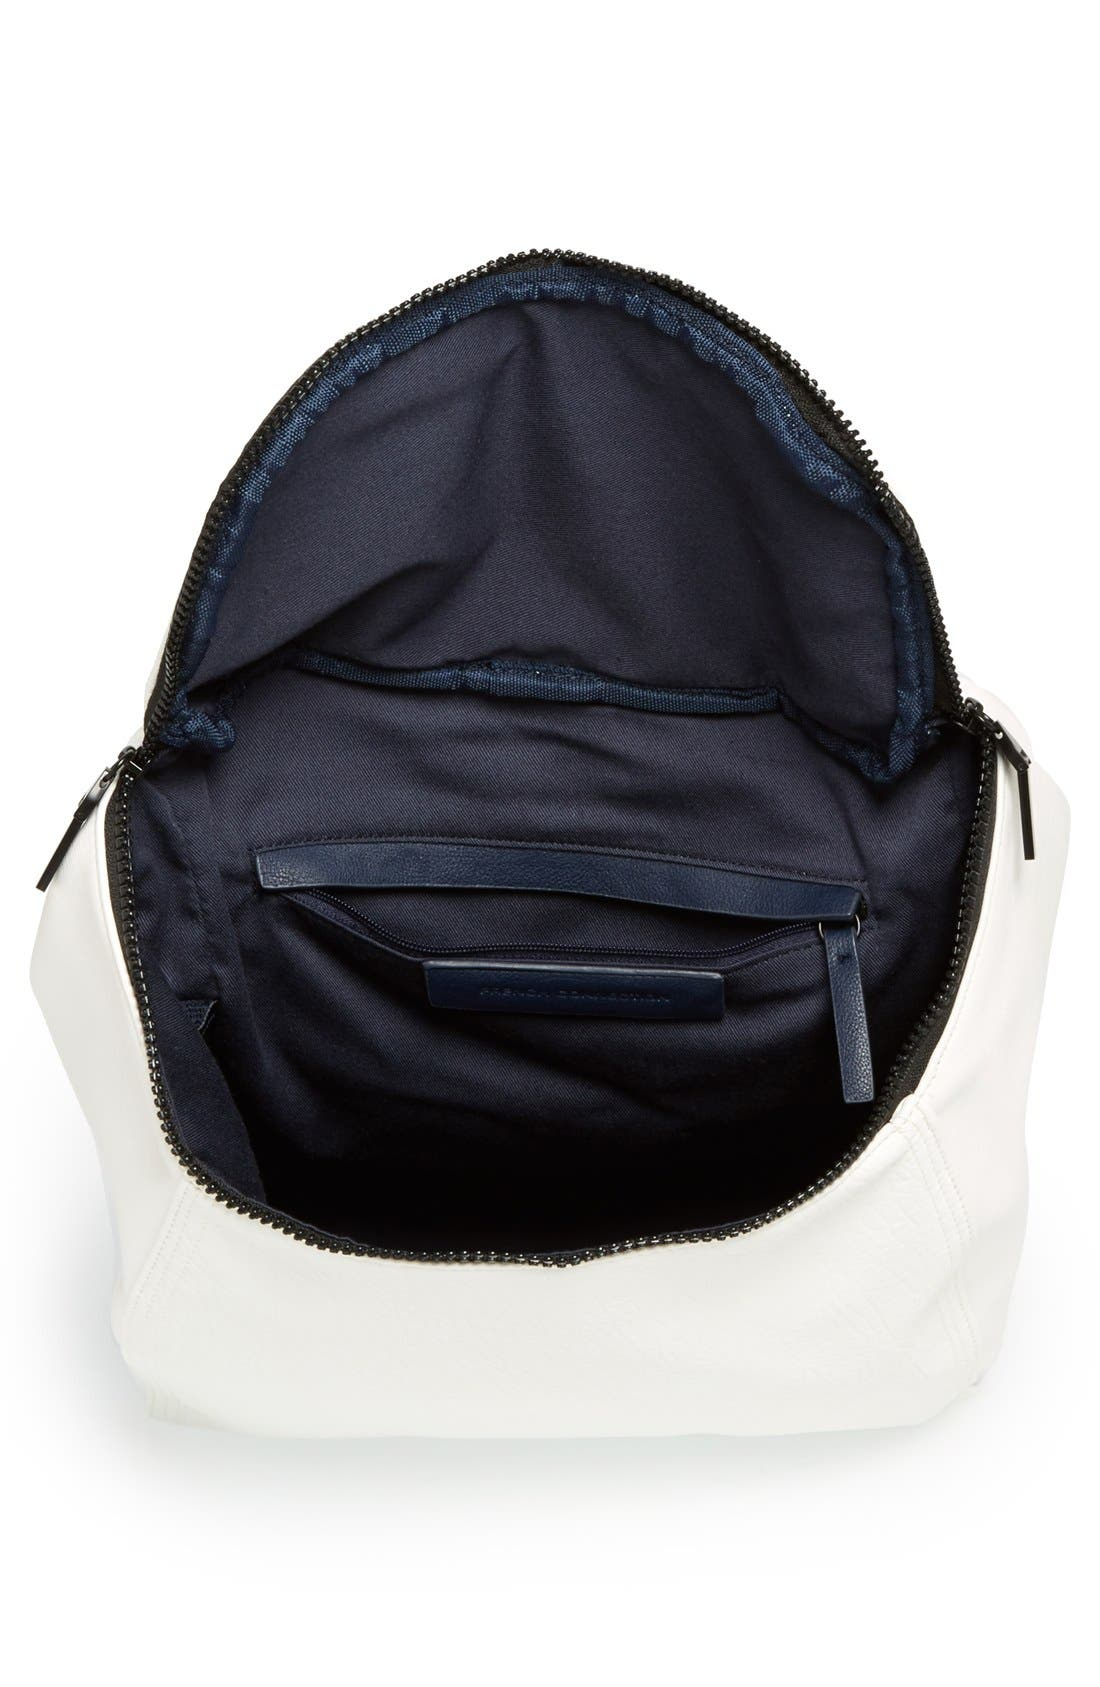 'Prim Lady' Faux Leather Backpack,                             Alternate thumbnail 3, color,                             White